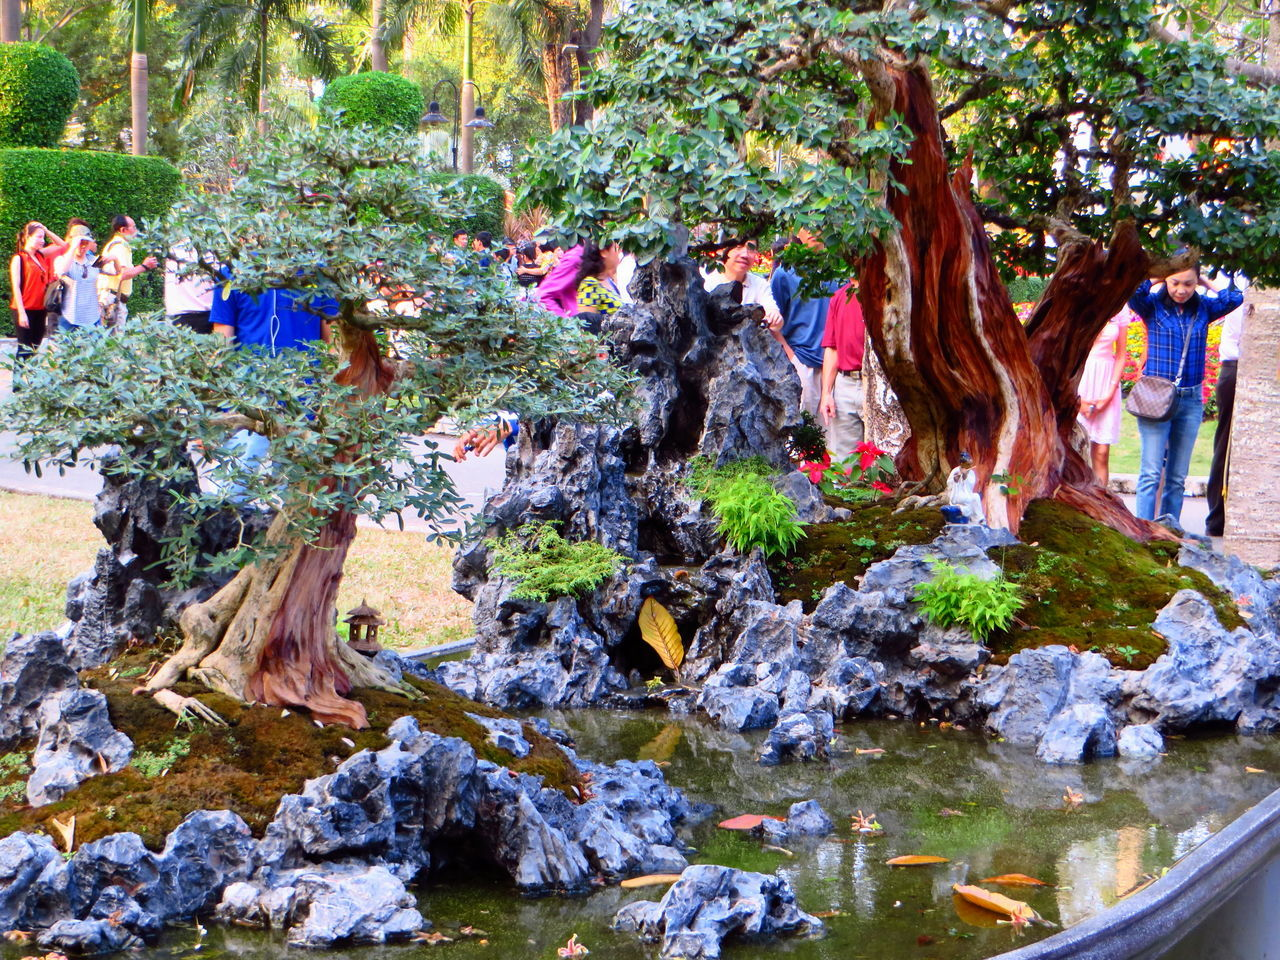 water, tree, nature, large group of people, outdoors, men, day, real people, people, adult, adults only